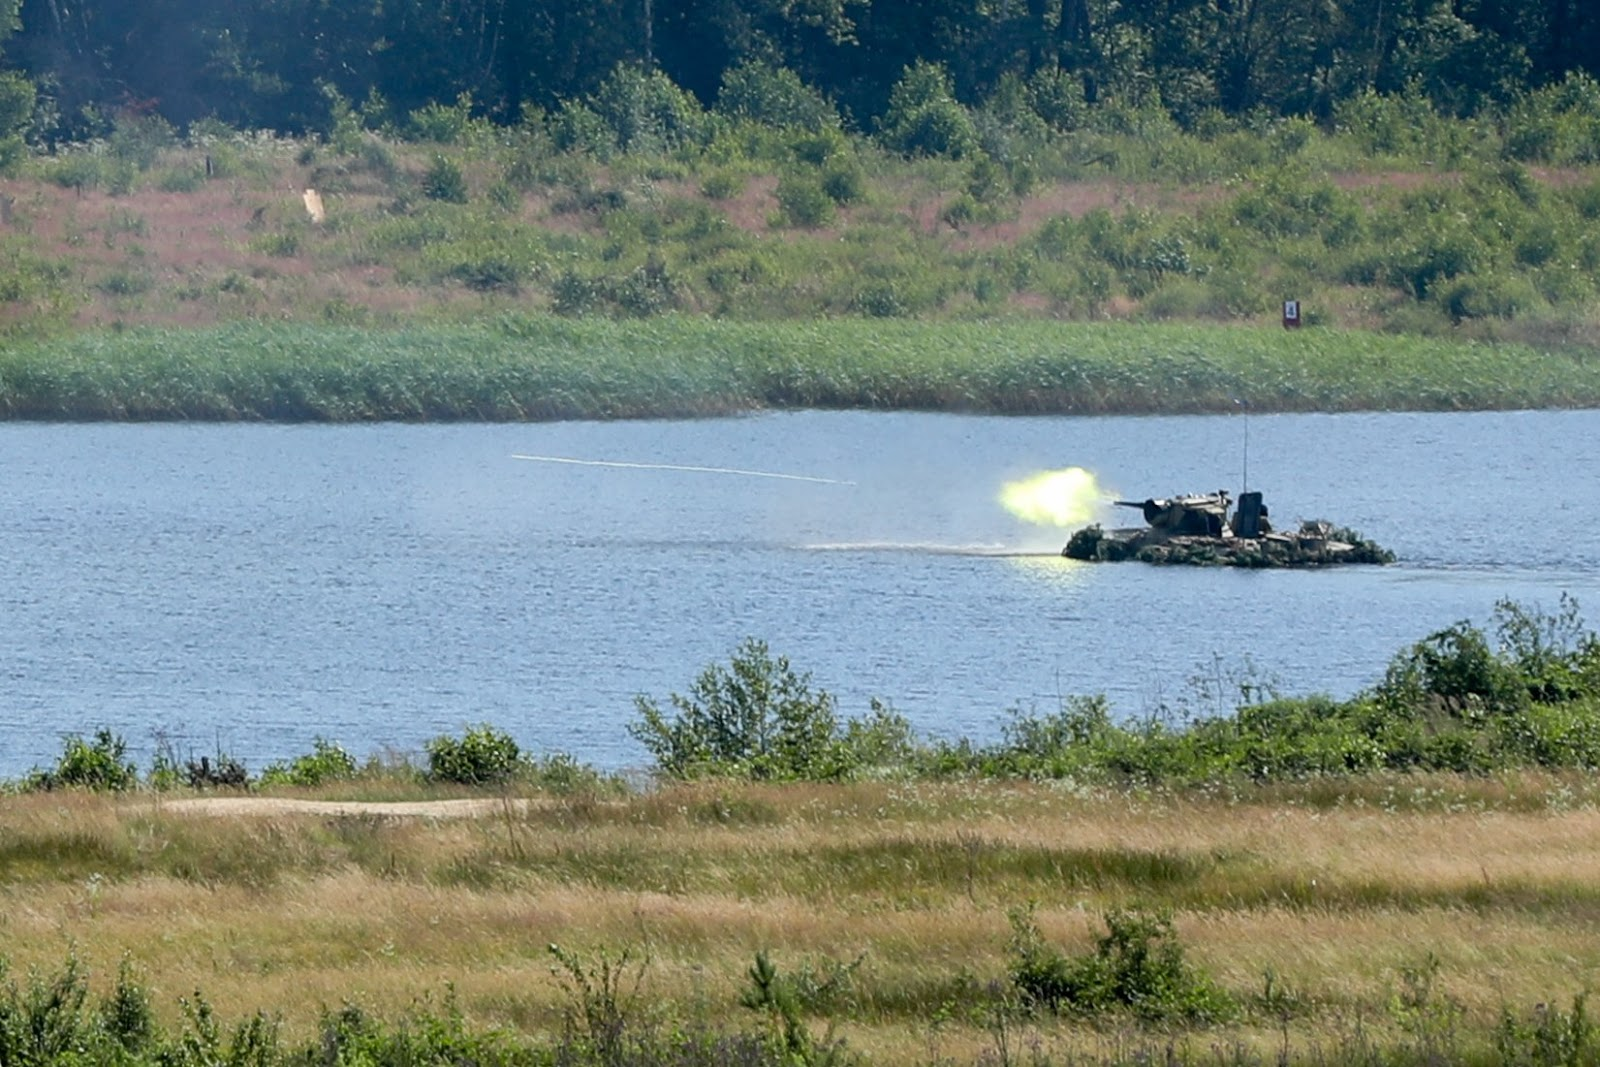 Ukrainian paratroopers test armored personnel carriers